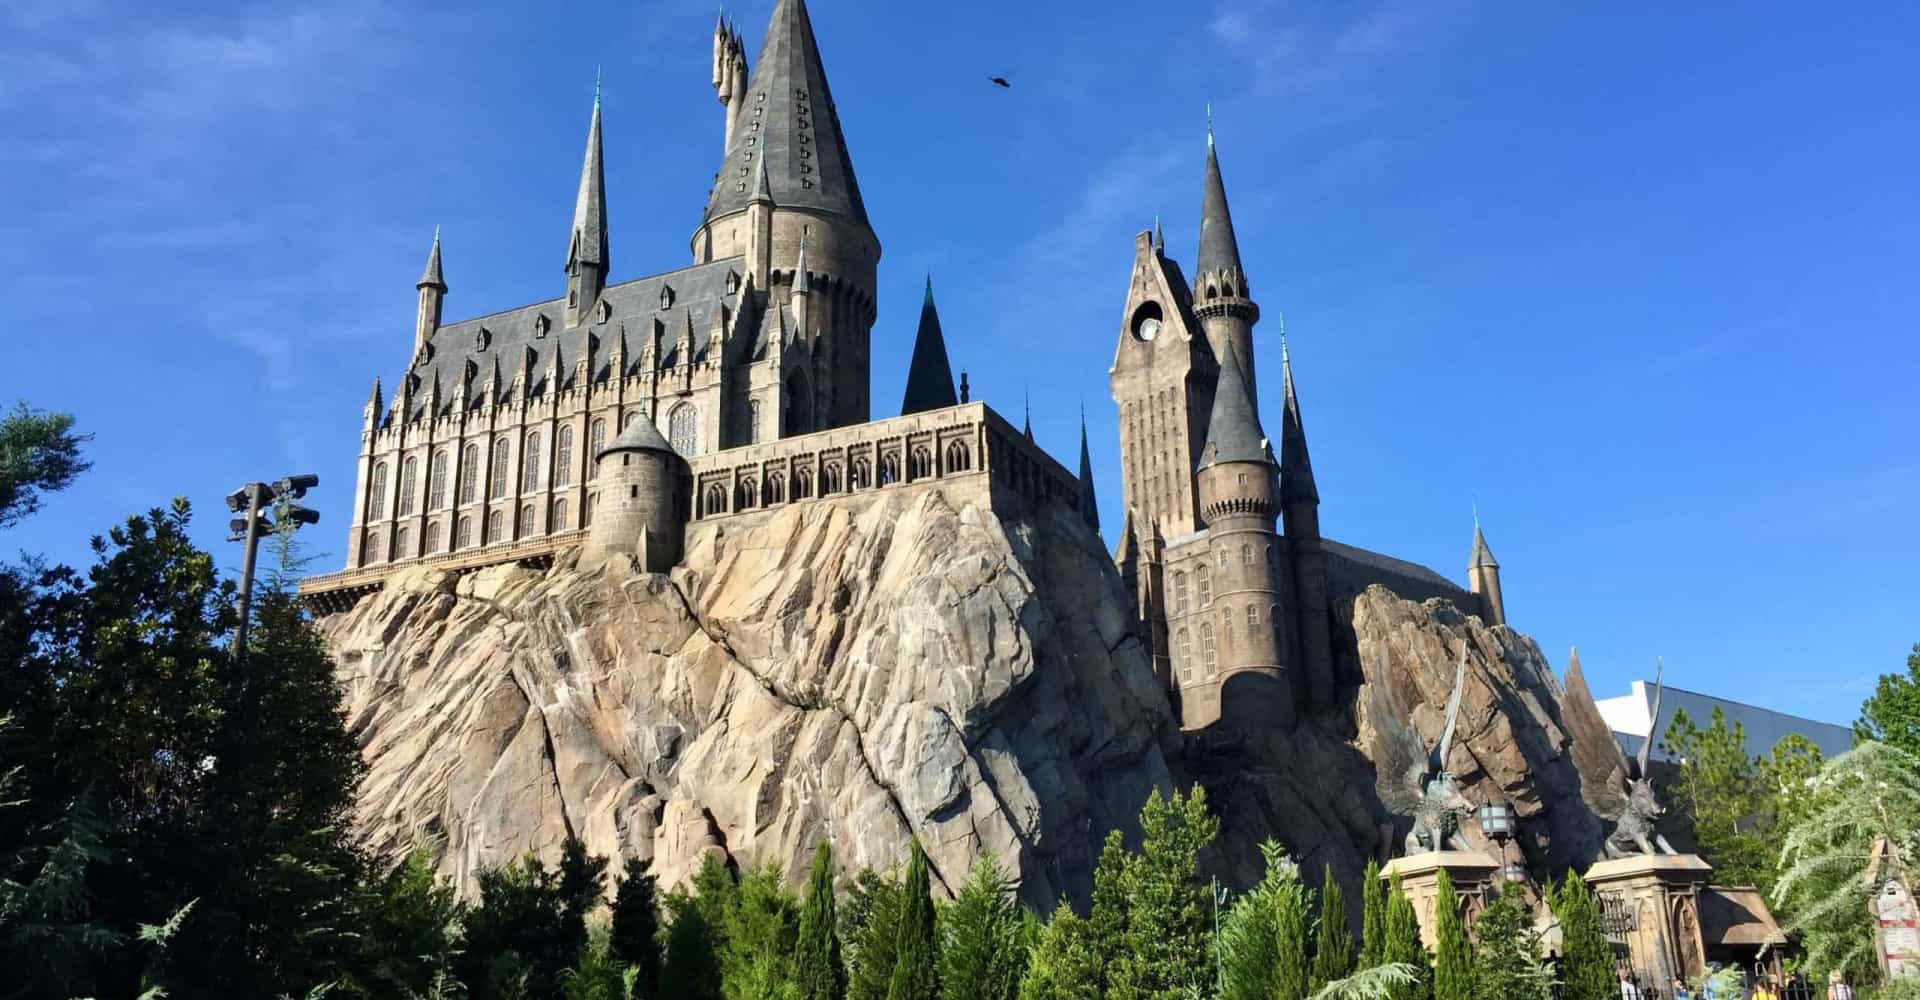 You can go to a real-life Hogwarts School of Witchcraft and